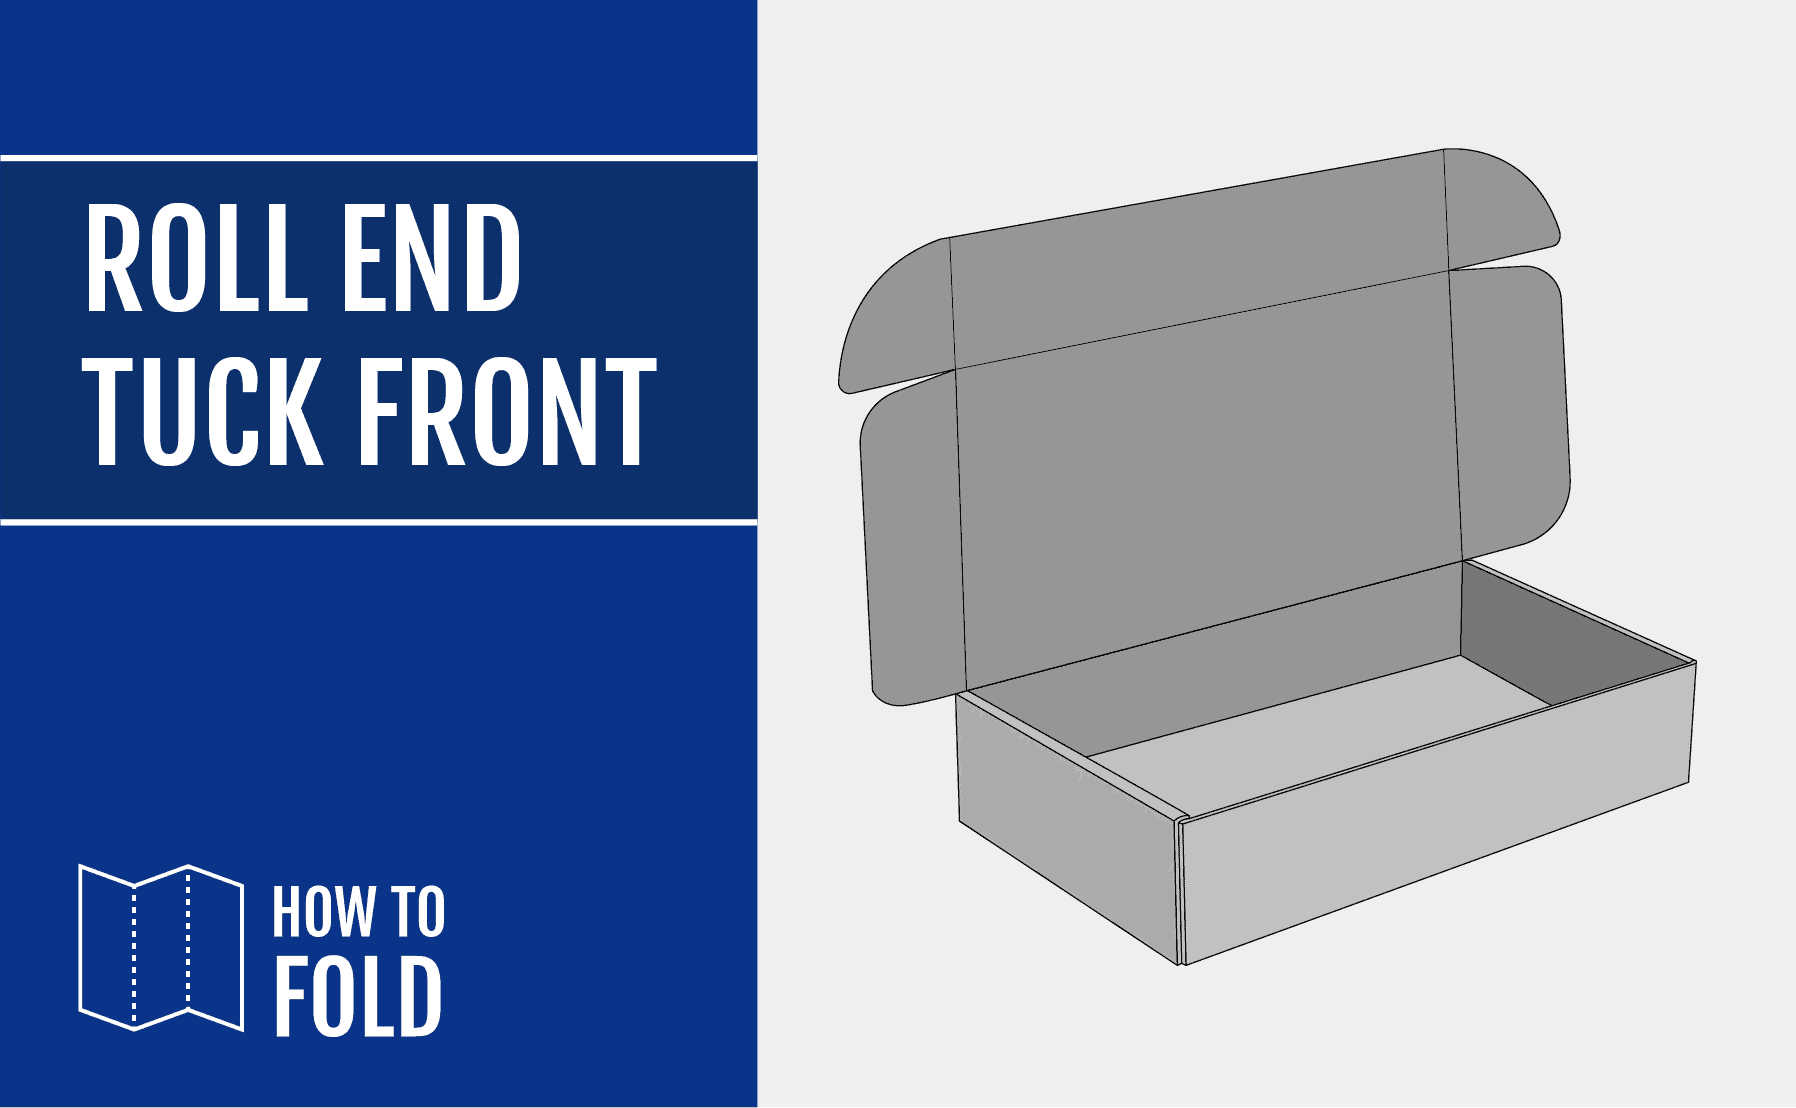 Roll-End-Tuck-Front mailer how to fold